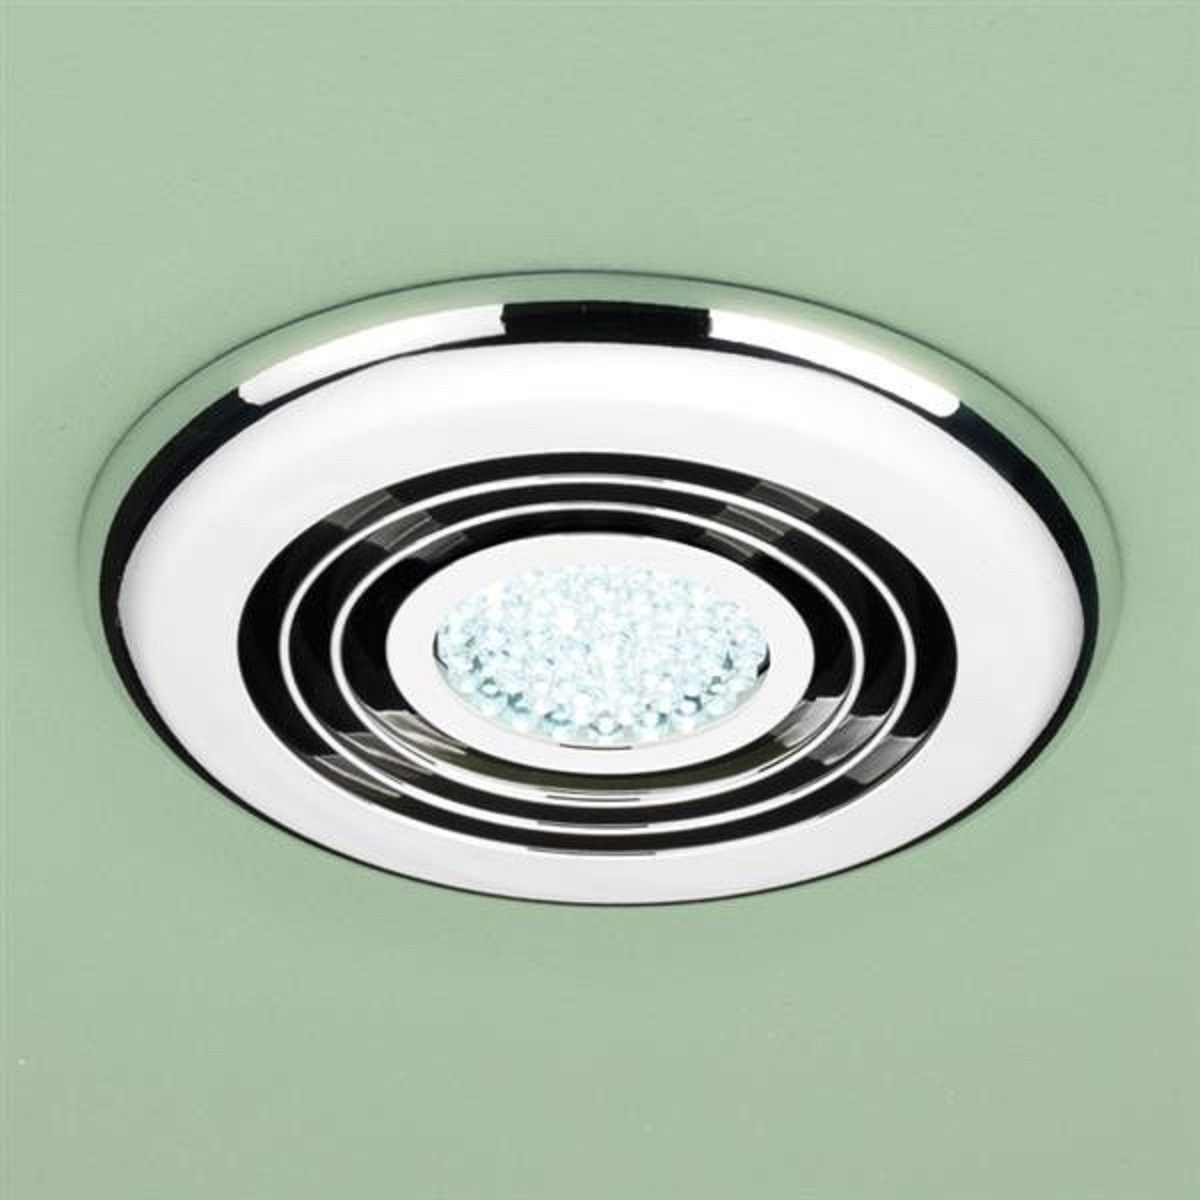 Bathroom Extractor Fan With Led Light